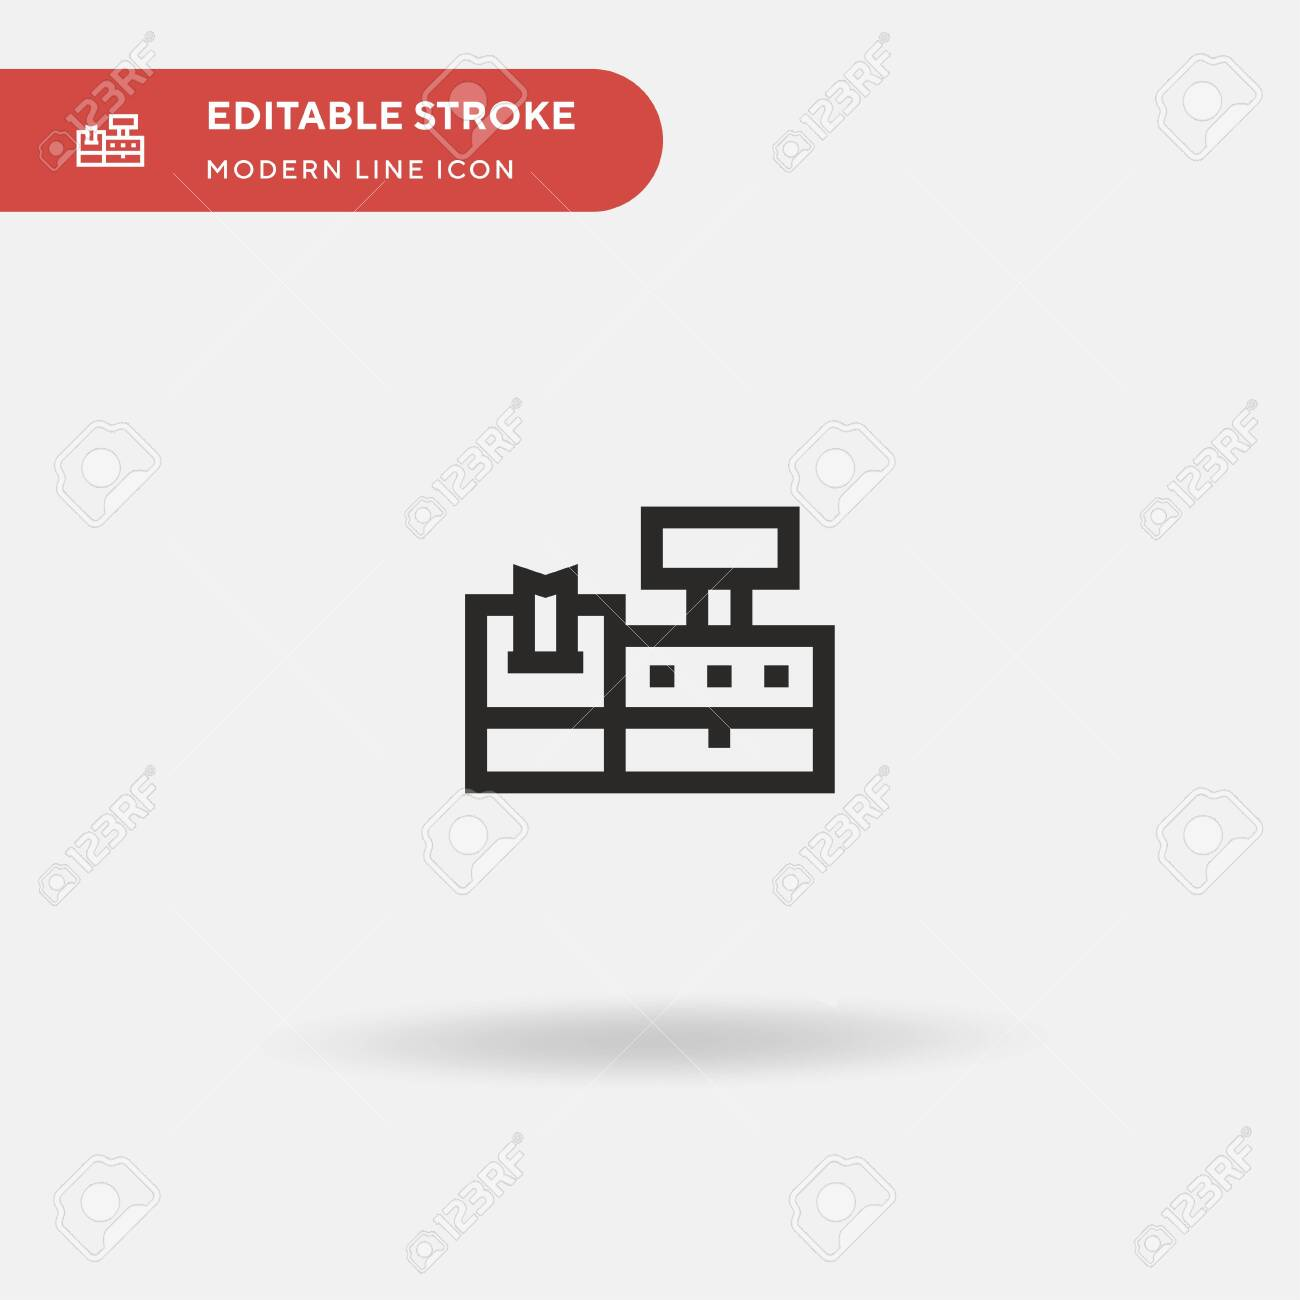 Cash Register Simple Vector Icon Illustration Symbol Design Royalty Free Cliparts Vectors And Stock Illustration Image 151777426